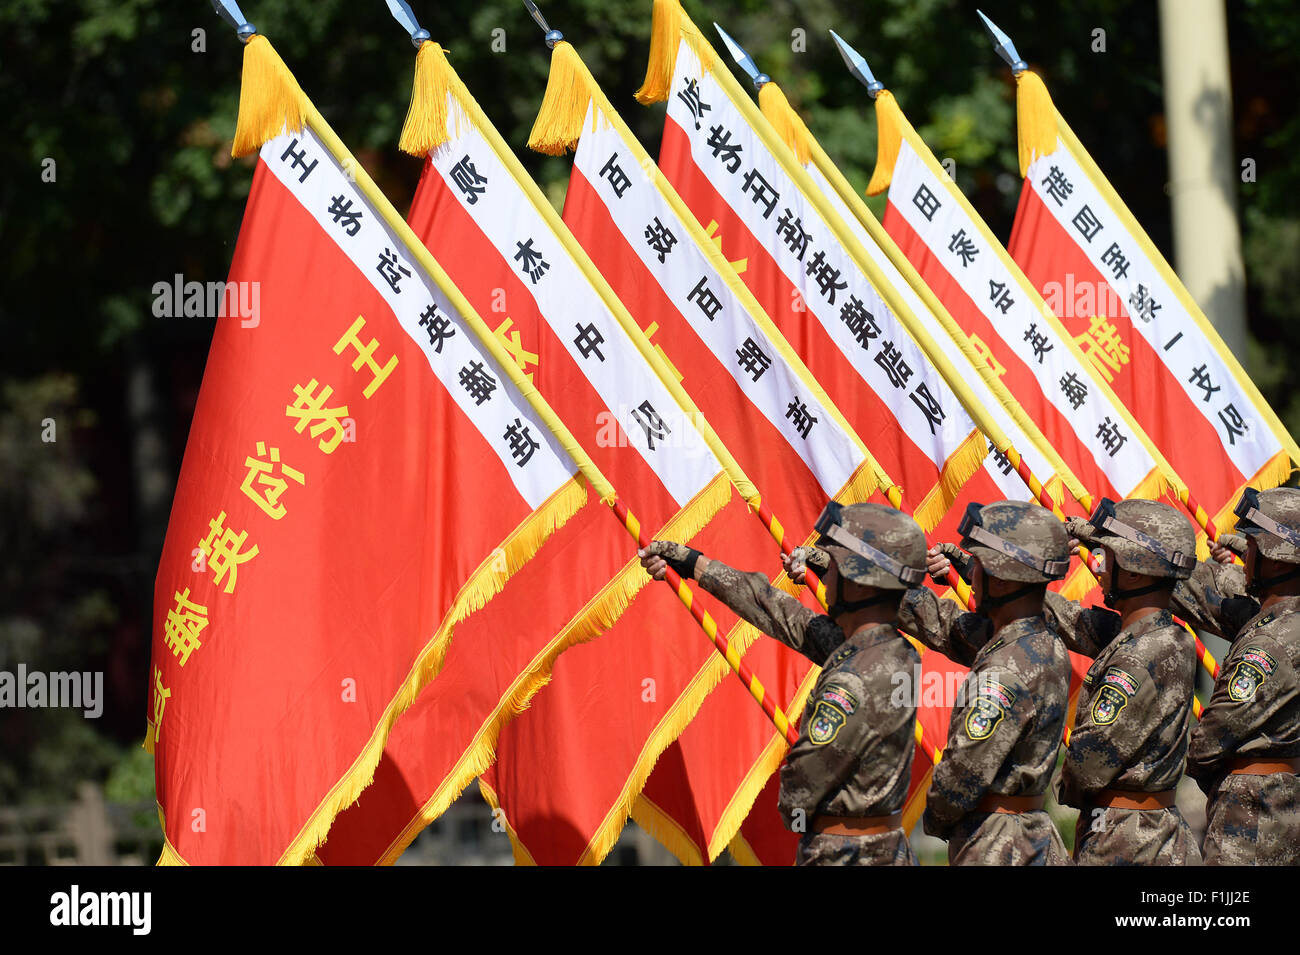 Beijing, China. 3rd September, 2015. A phalanx honoring heroes of the 'Liulaozhuang Battle' attends a military - Stock Image